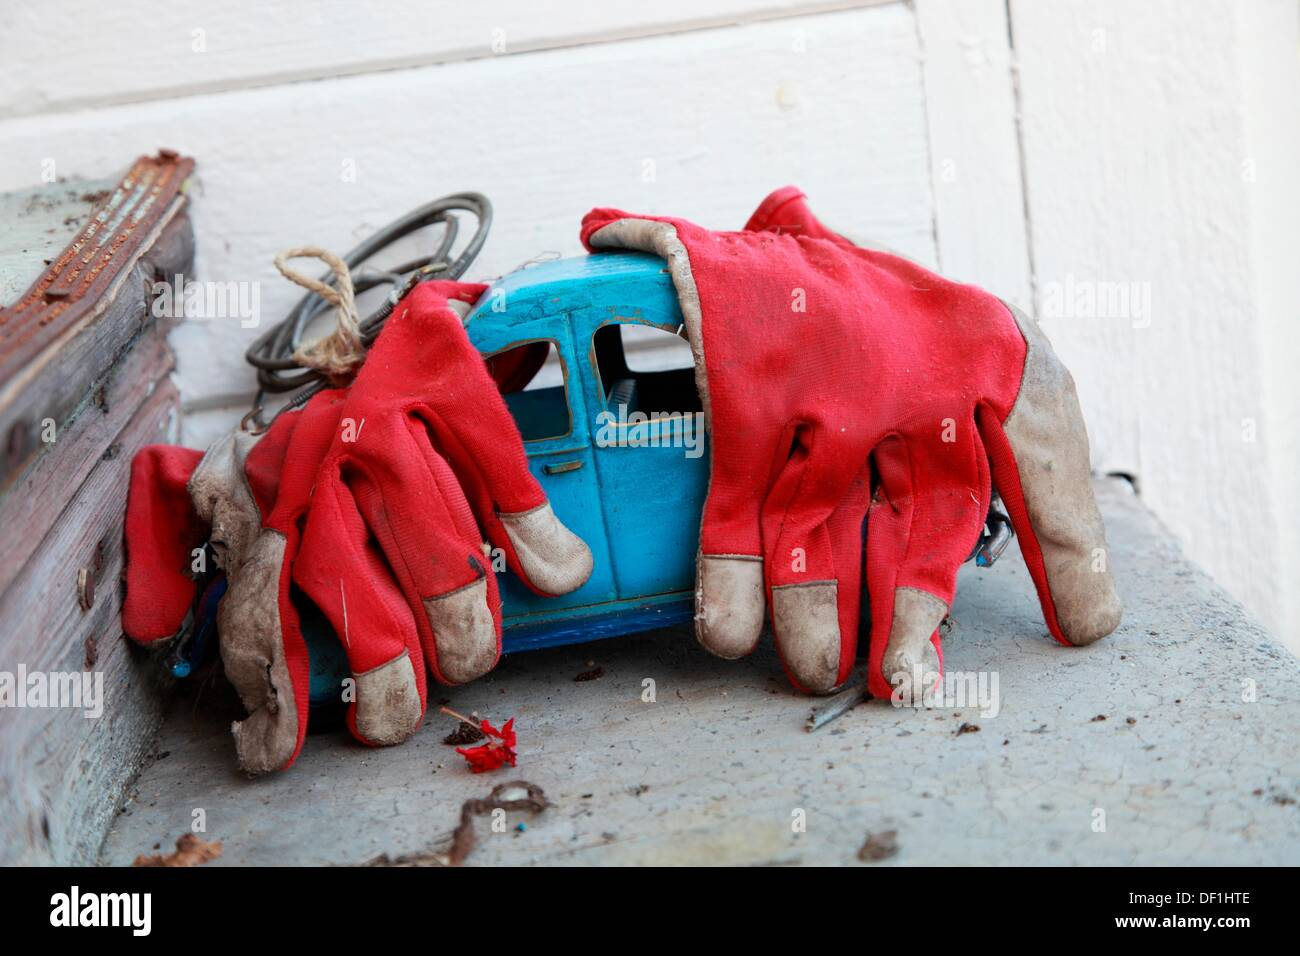 An old blue tin VW-beetle toy car lies abandoned on a shelf in a garden, covered with red garden gloves Stock Photo